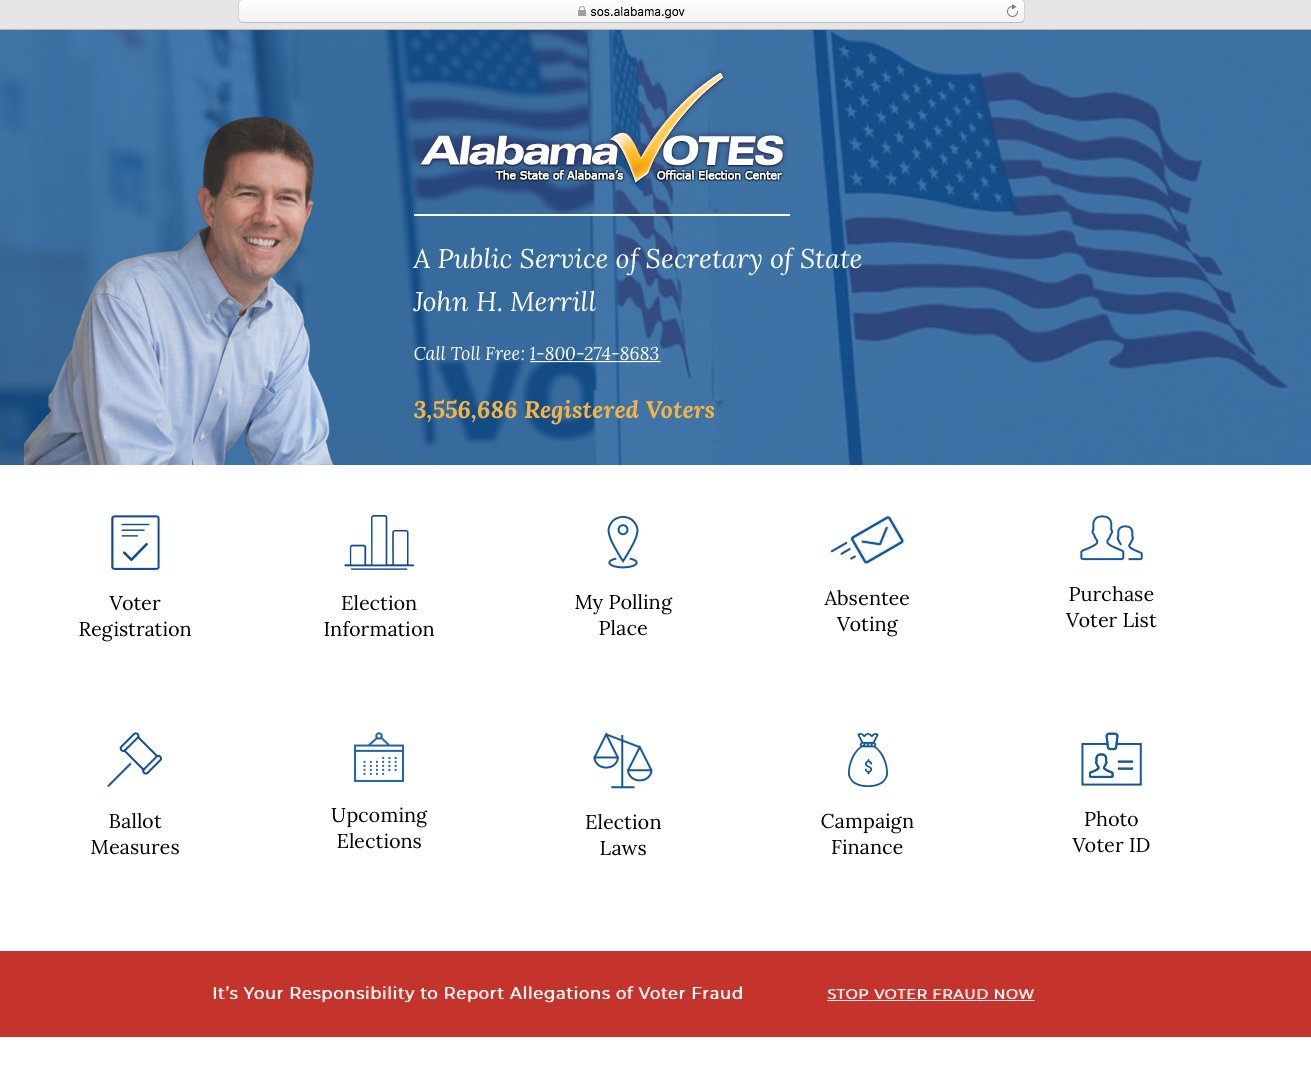 This is the home page of alabamavotes.gov, which offers voter registration, absentee registration, and other services and information involving the 2020 elections.